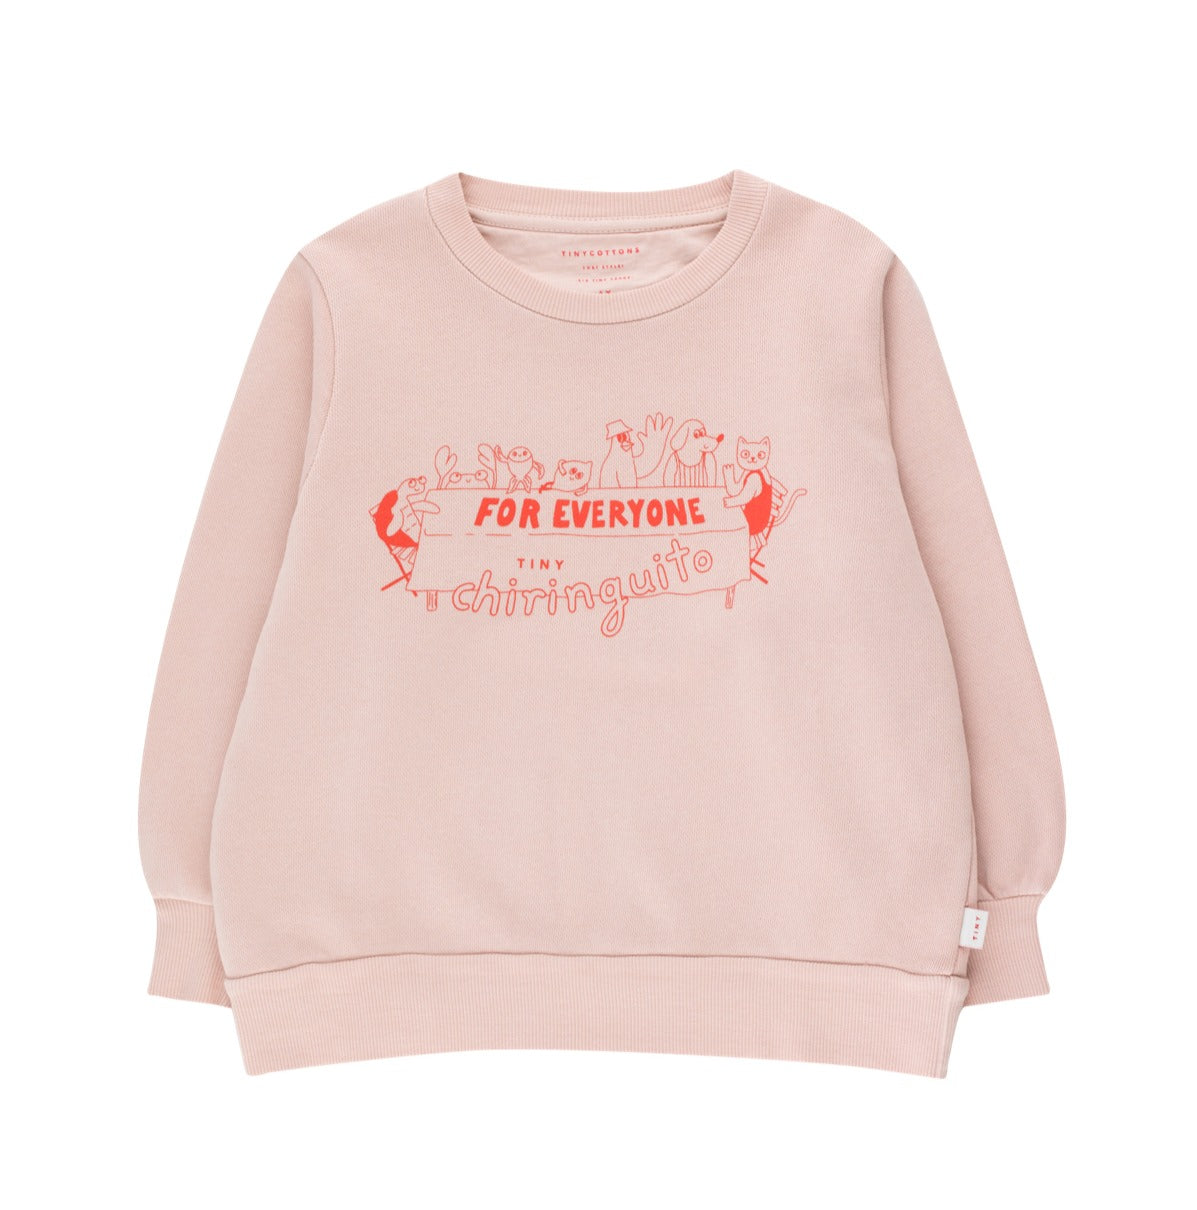 FOR EVERYONE SWEATSHIRT